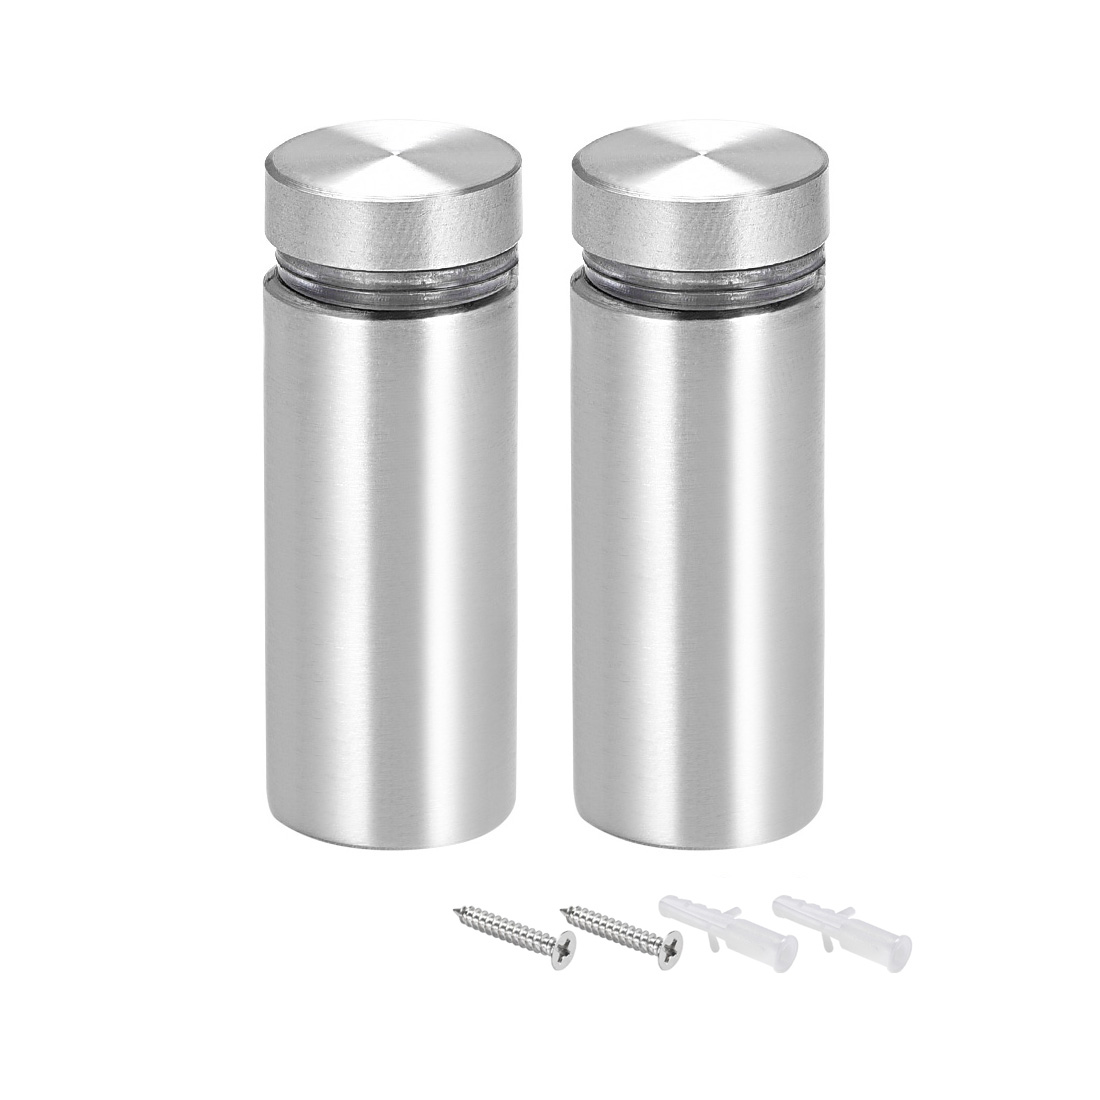 Glass Standoff Mount Solid Stainless Steel Wall Standoff Holder 16mmx42mm 2 Pcs